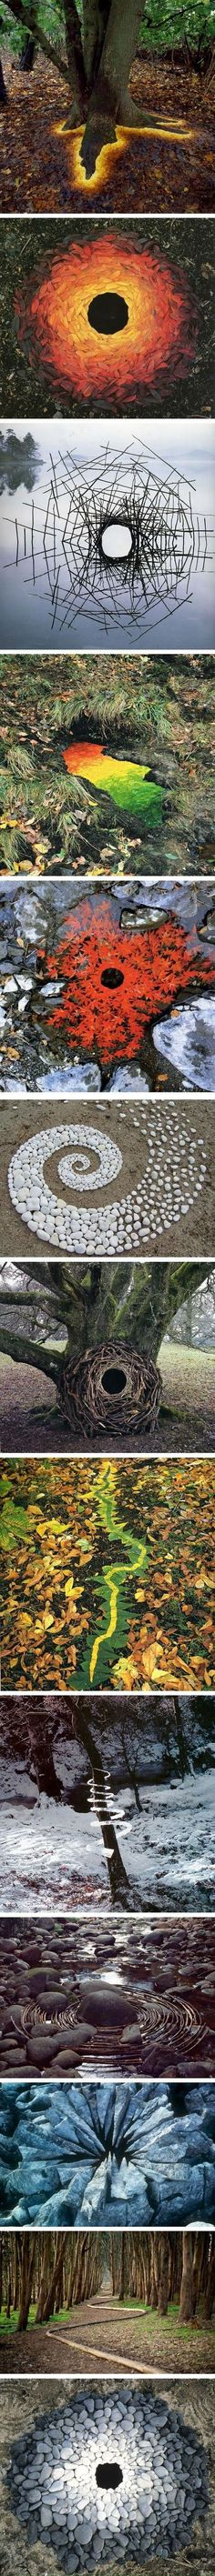 1,158 points • 237 comments - An Artist Used Nature To Create Some Amazing Land Art - IWSMT has amazing images, videos and anectodes to waste your time on